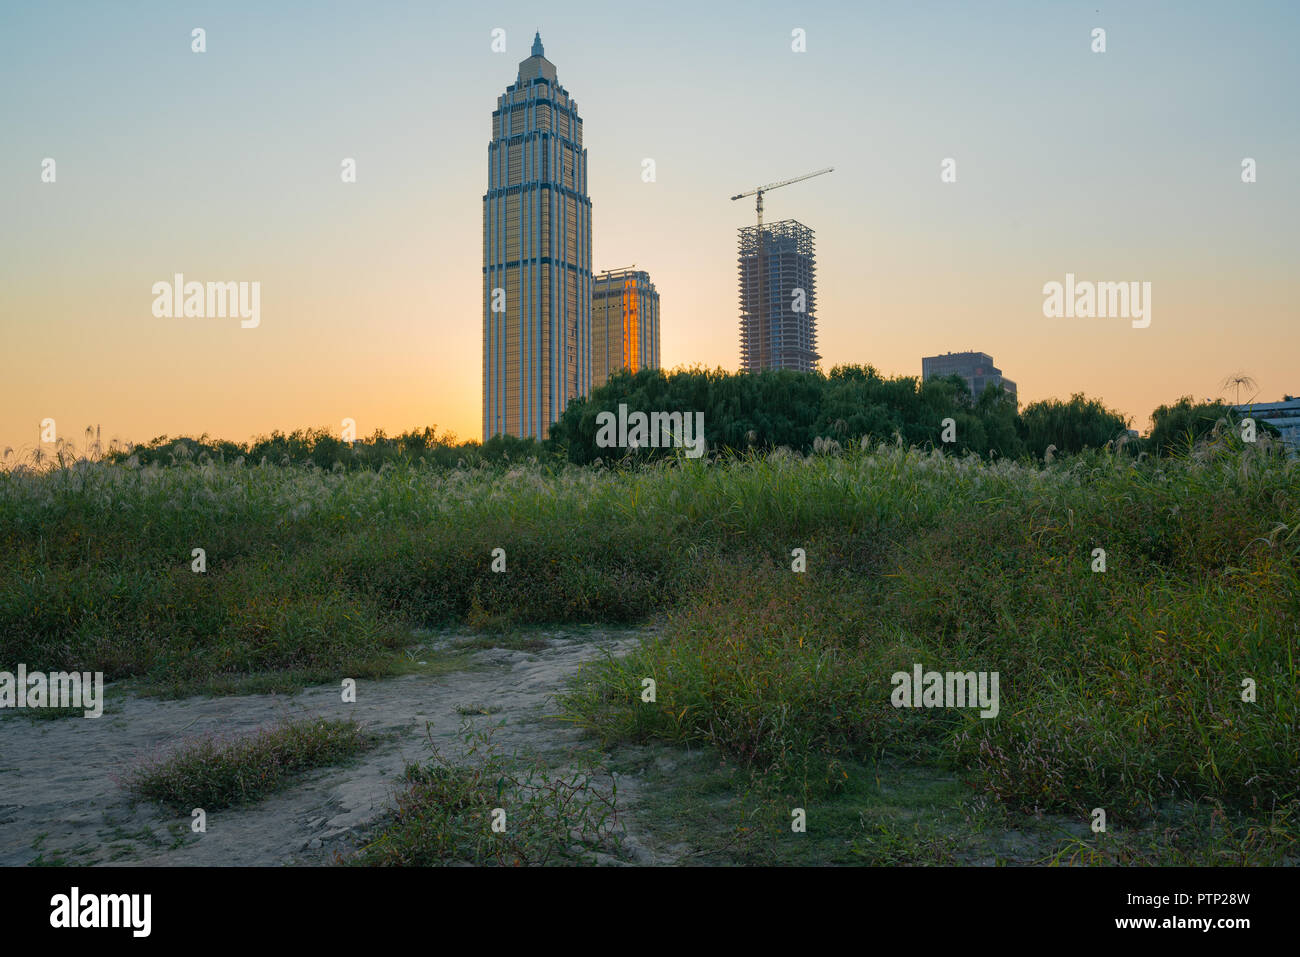 City buildings emerge from nature , Hankou district skyline in Wuhan Hubei China - Stock Image